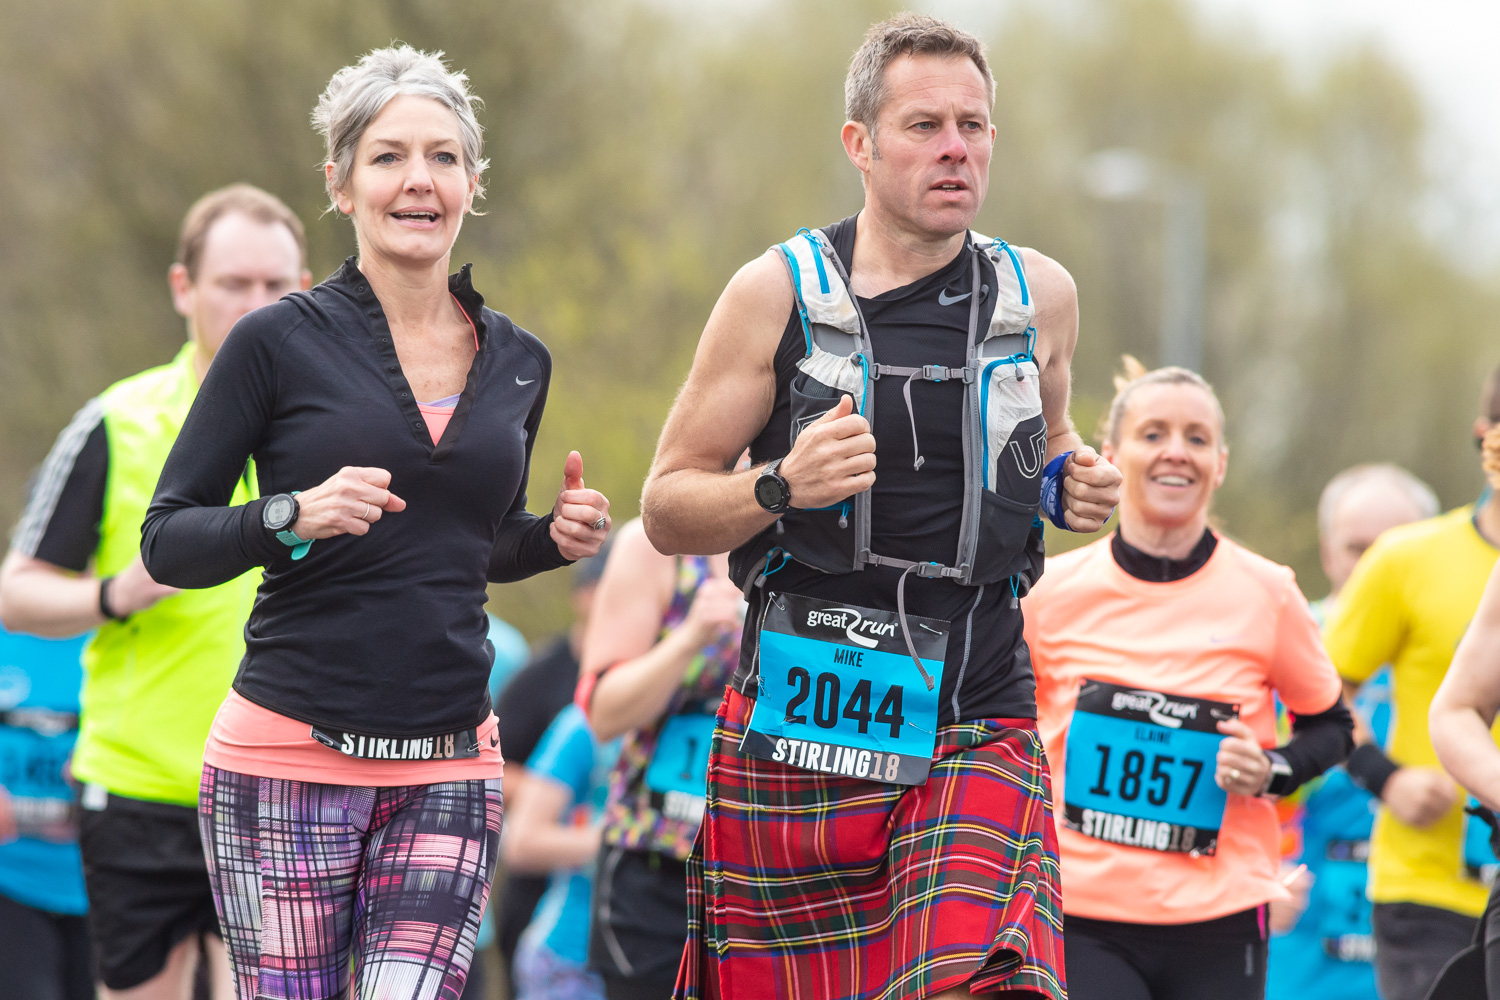 stirling marathon 2018.jpg